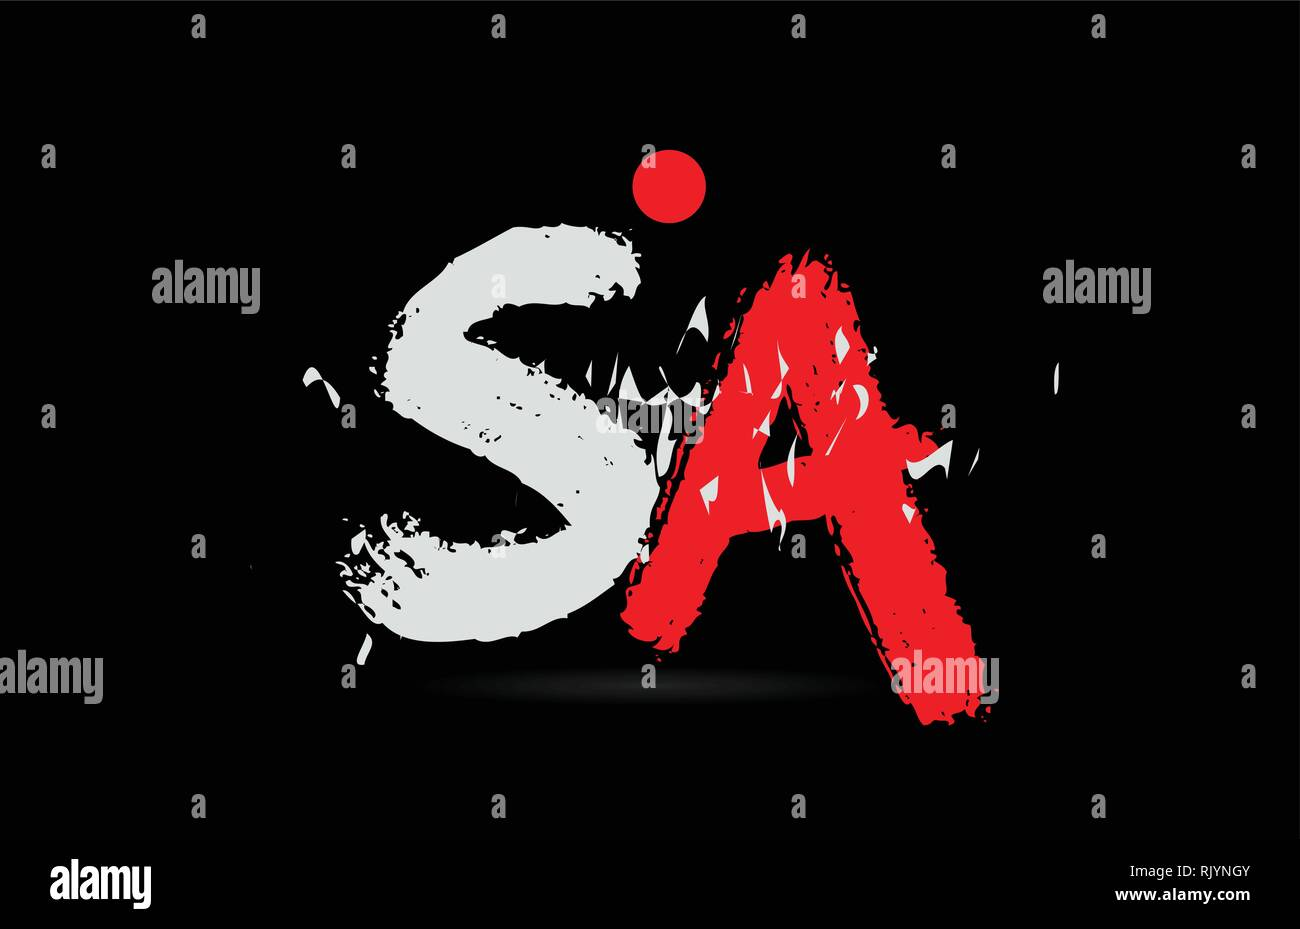 Design of alphabet letter combination SA S A on black background with grunge texture and white red color suitable as a logo for a company or business - Stock Vector